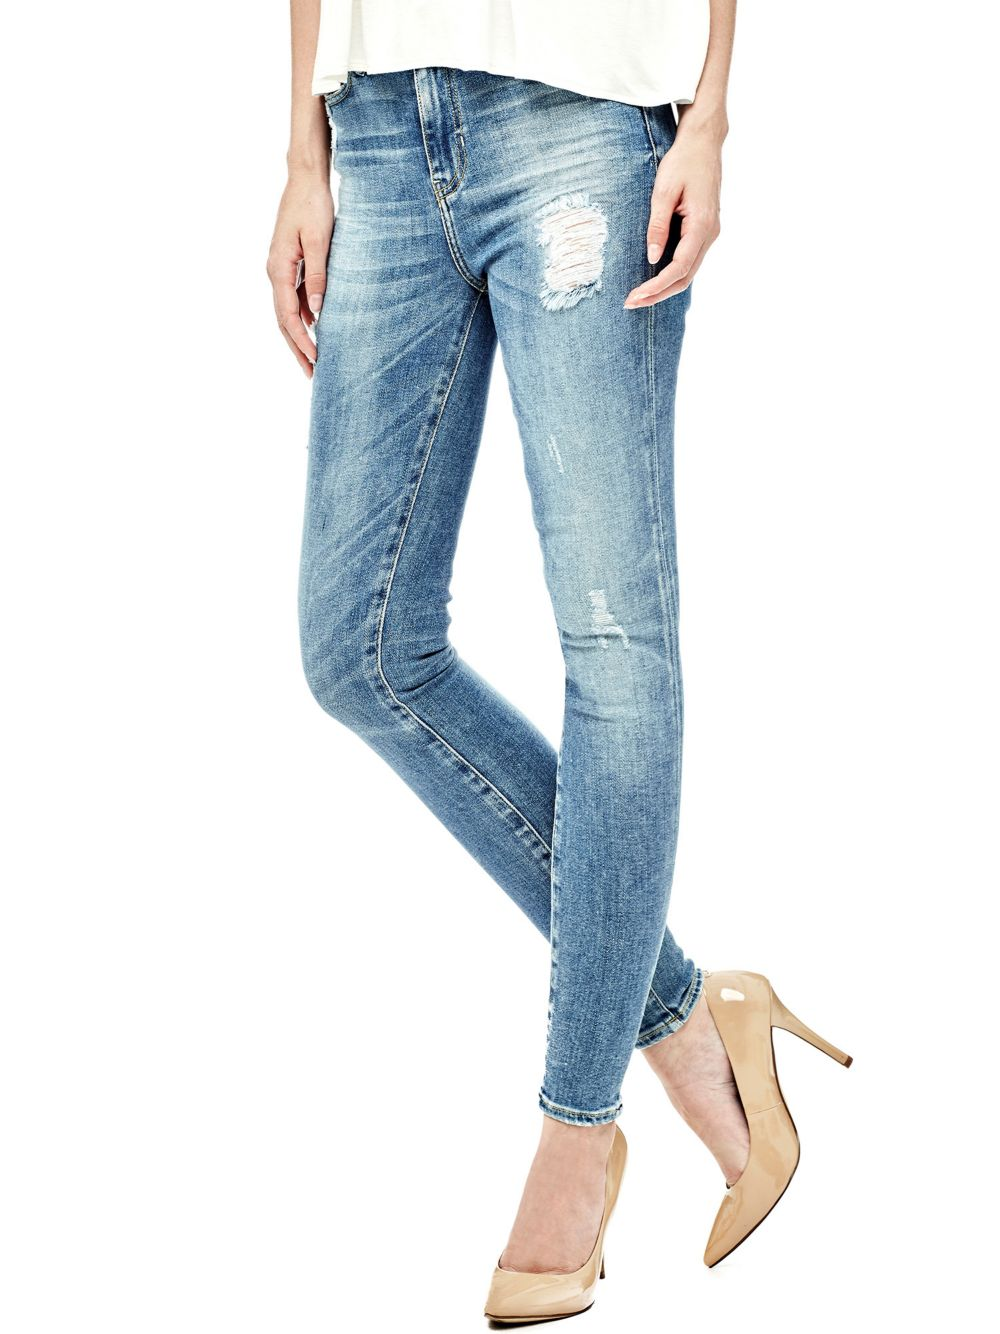 JEAN ABRASIONS ECODENIM Guess